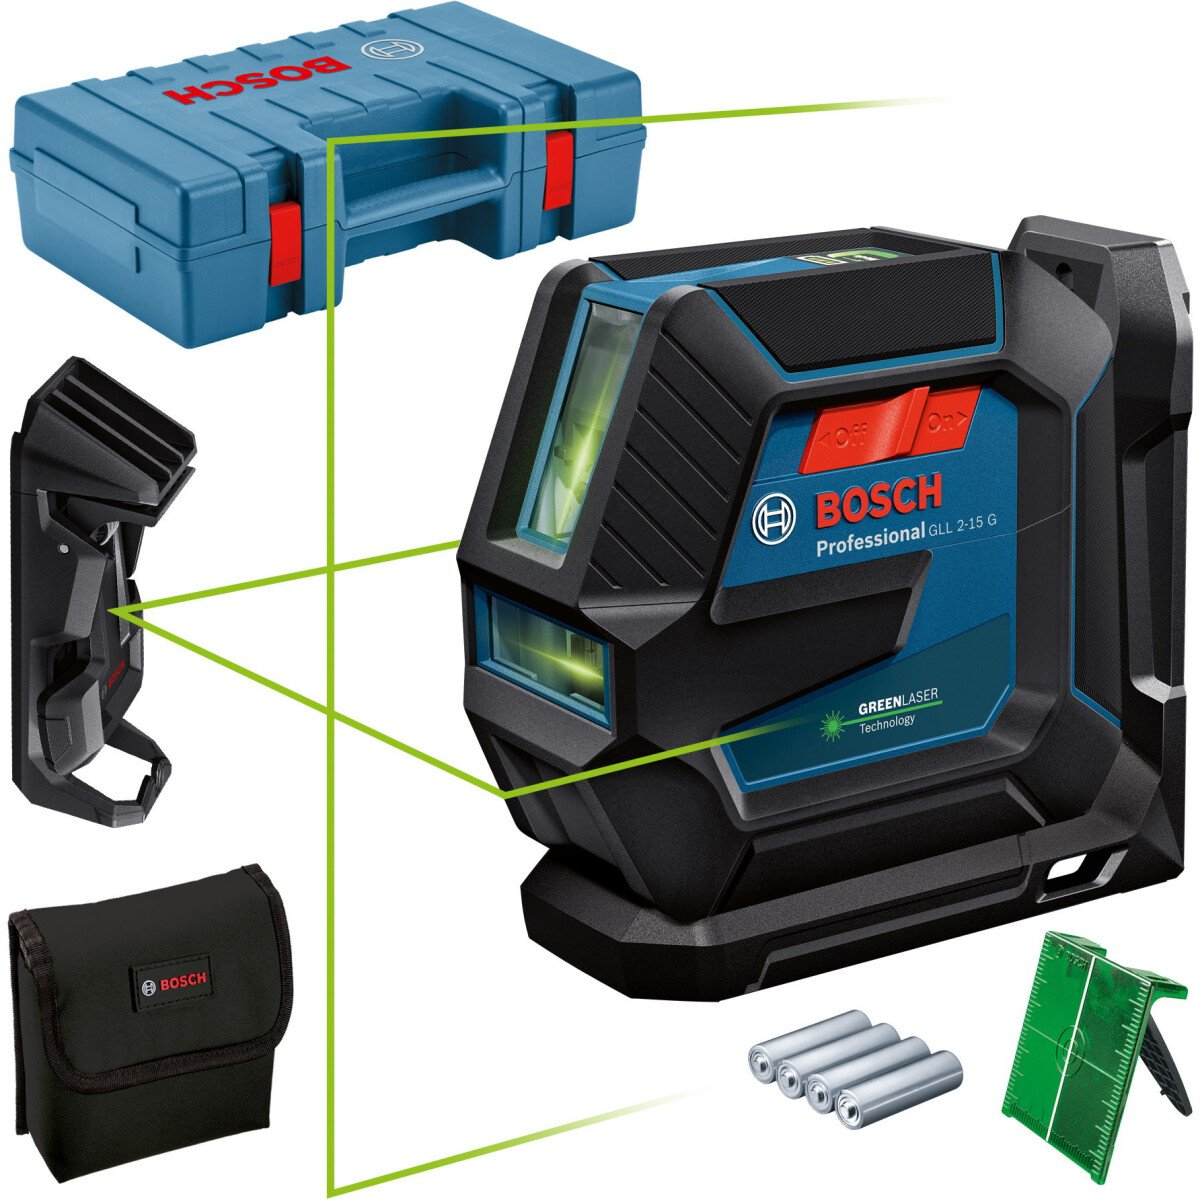 Bosch GLL 2-15 G + LB 10 + Ceiling Clip Greem Beam Line Laser 15m With Target Plate in Carry Case